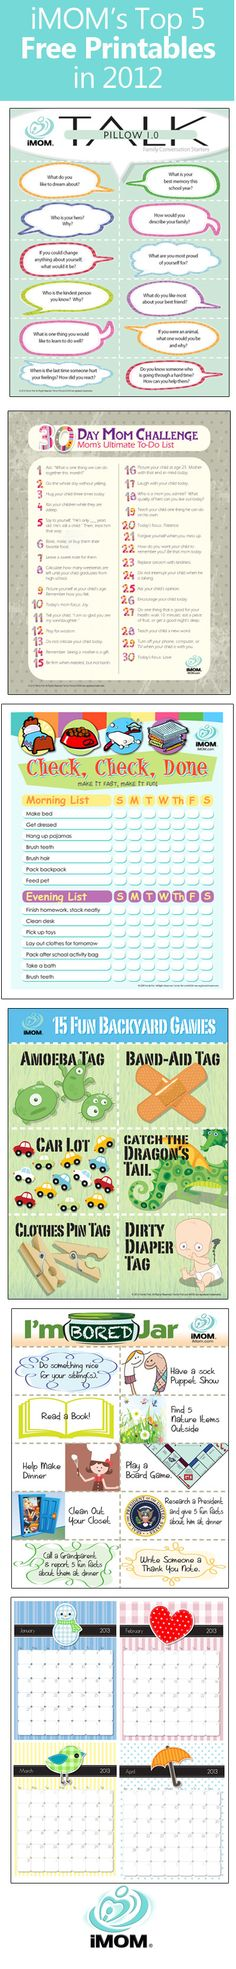 iMOM has over 200 printables to help moms! These are Great! imom.com/tools/